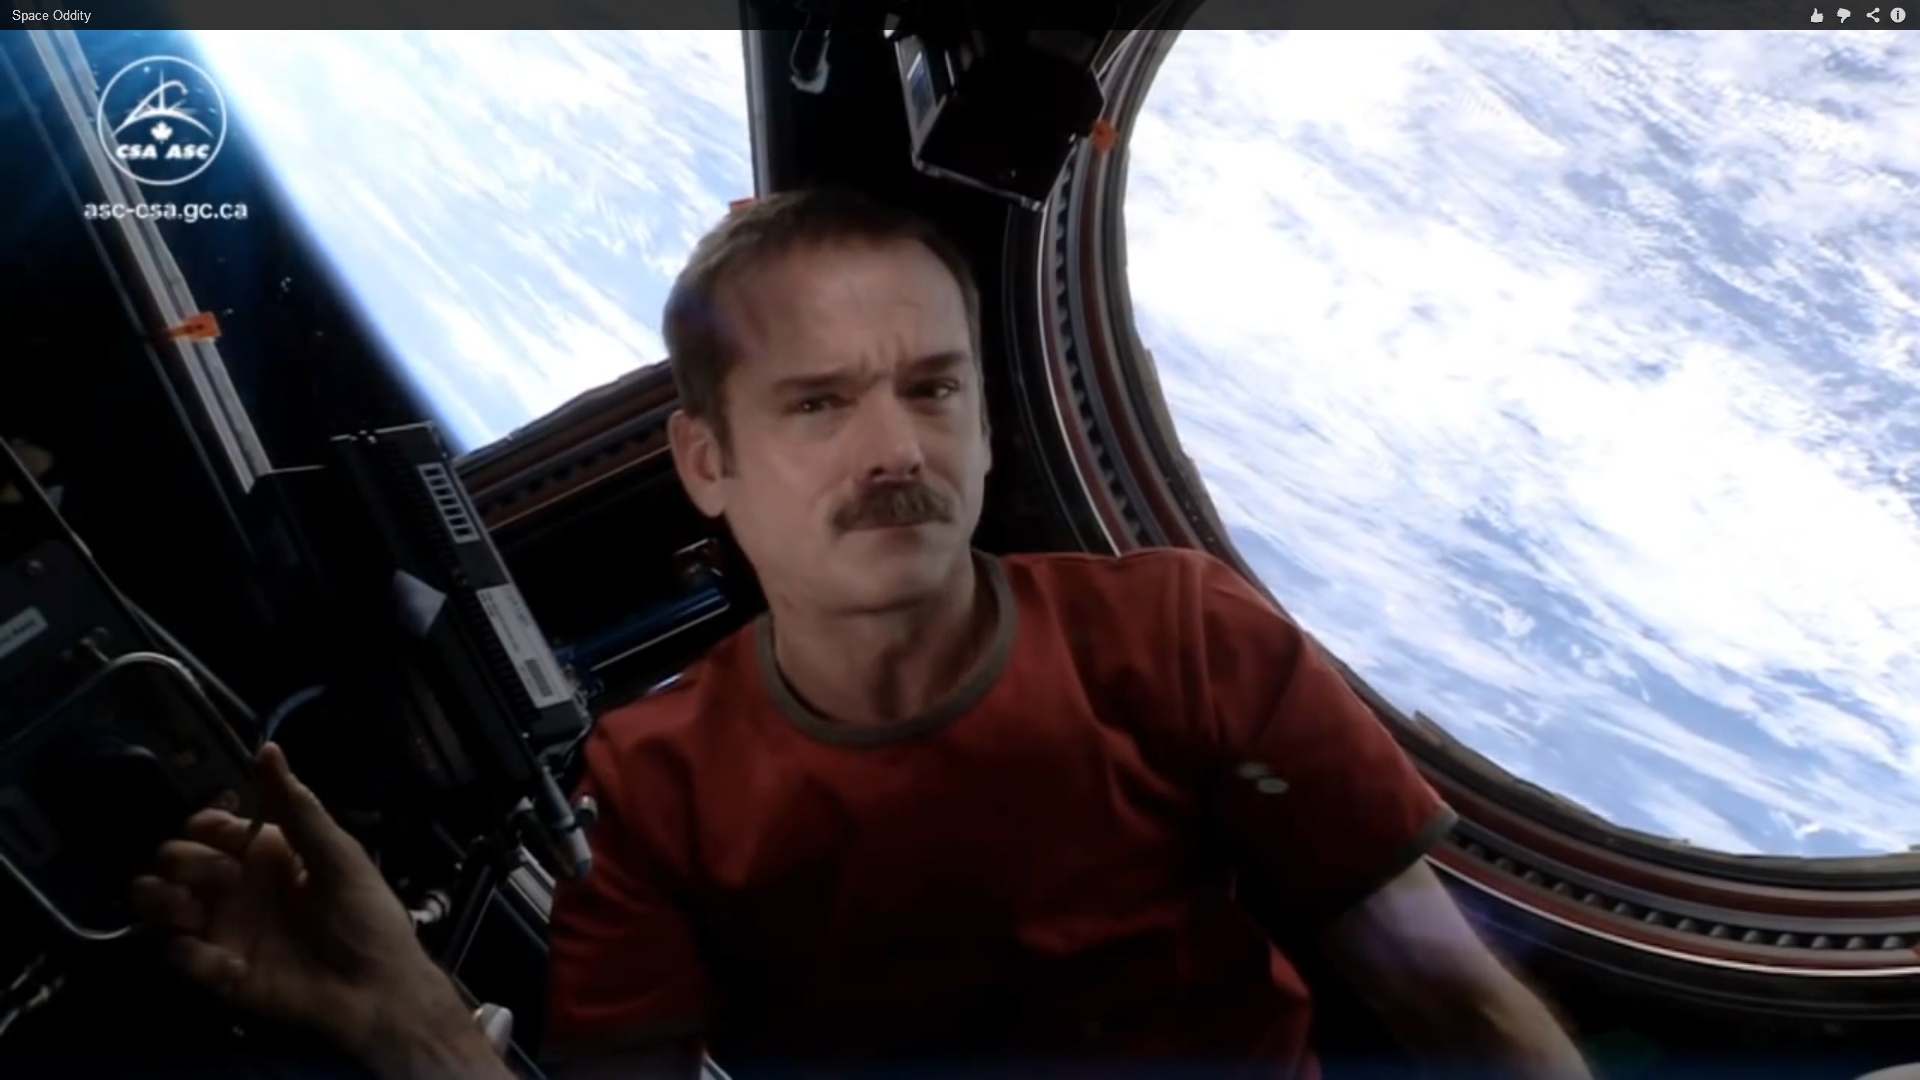 canadian-astronaut-chris-hadfield-space-oddity